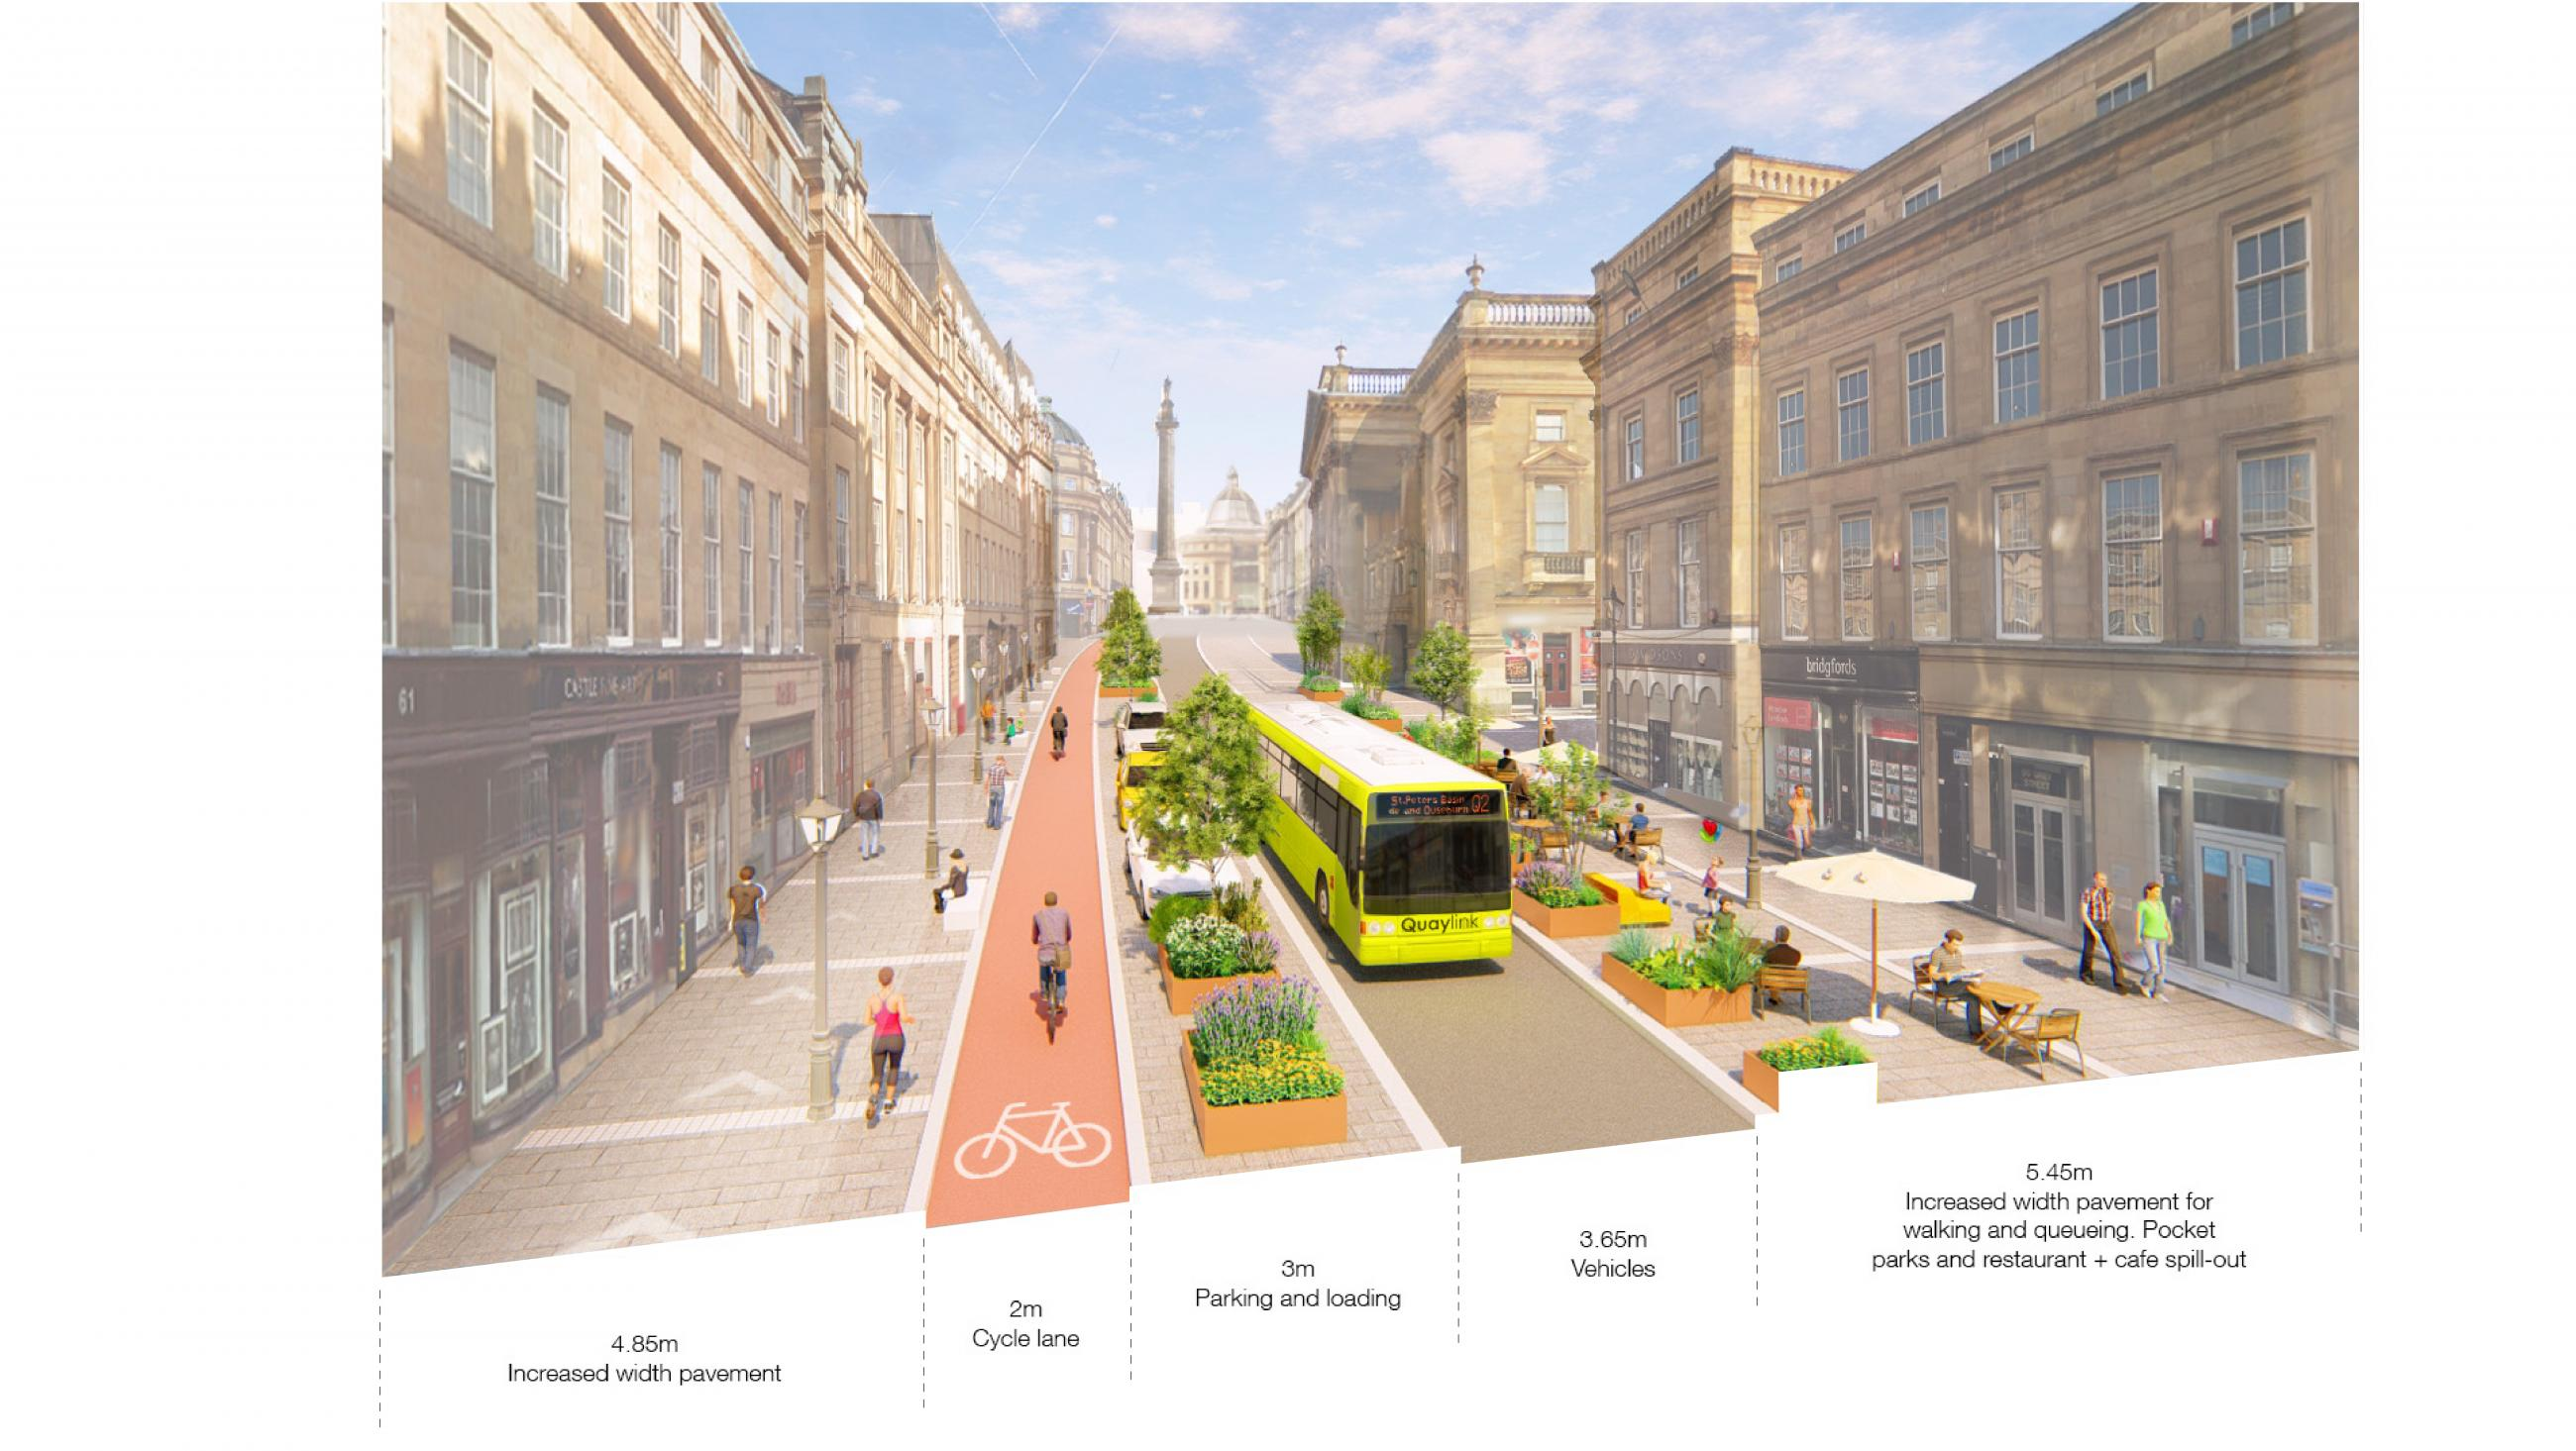 Artist impressions showing a potential new layout for Grey Street with space for walking, cycling and vehicles.